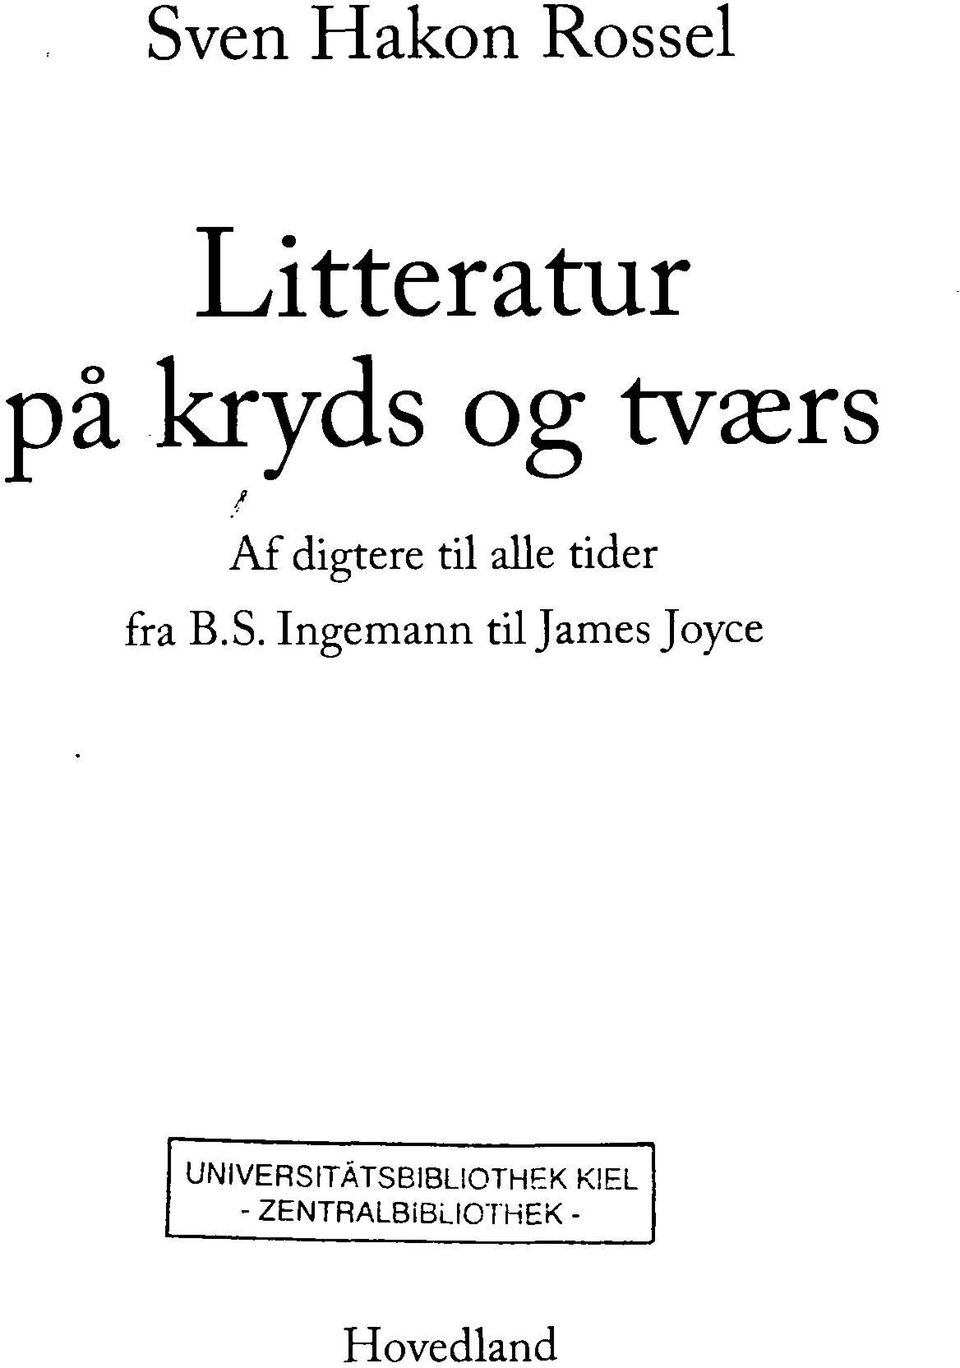 Ingemann til James Joyce